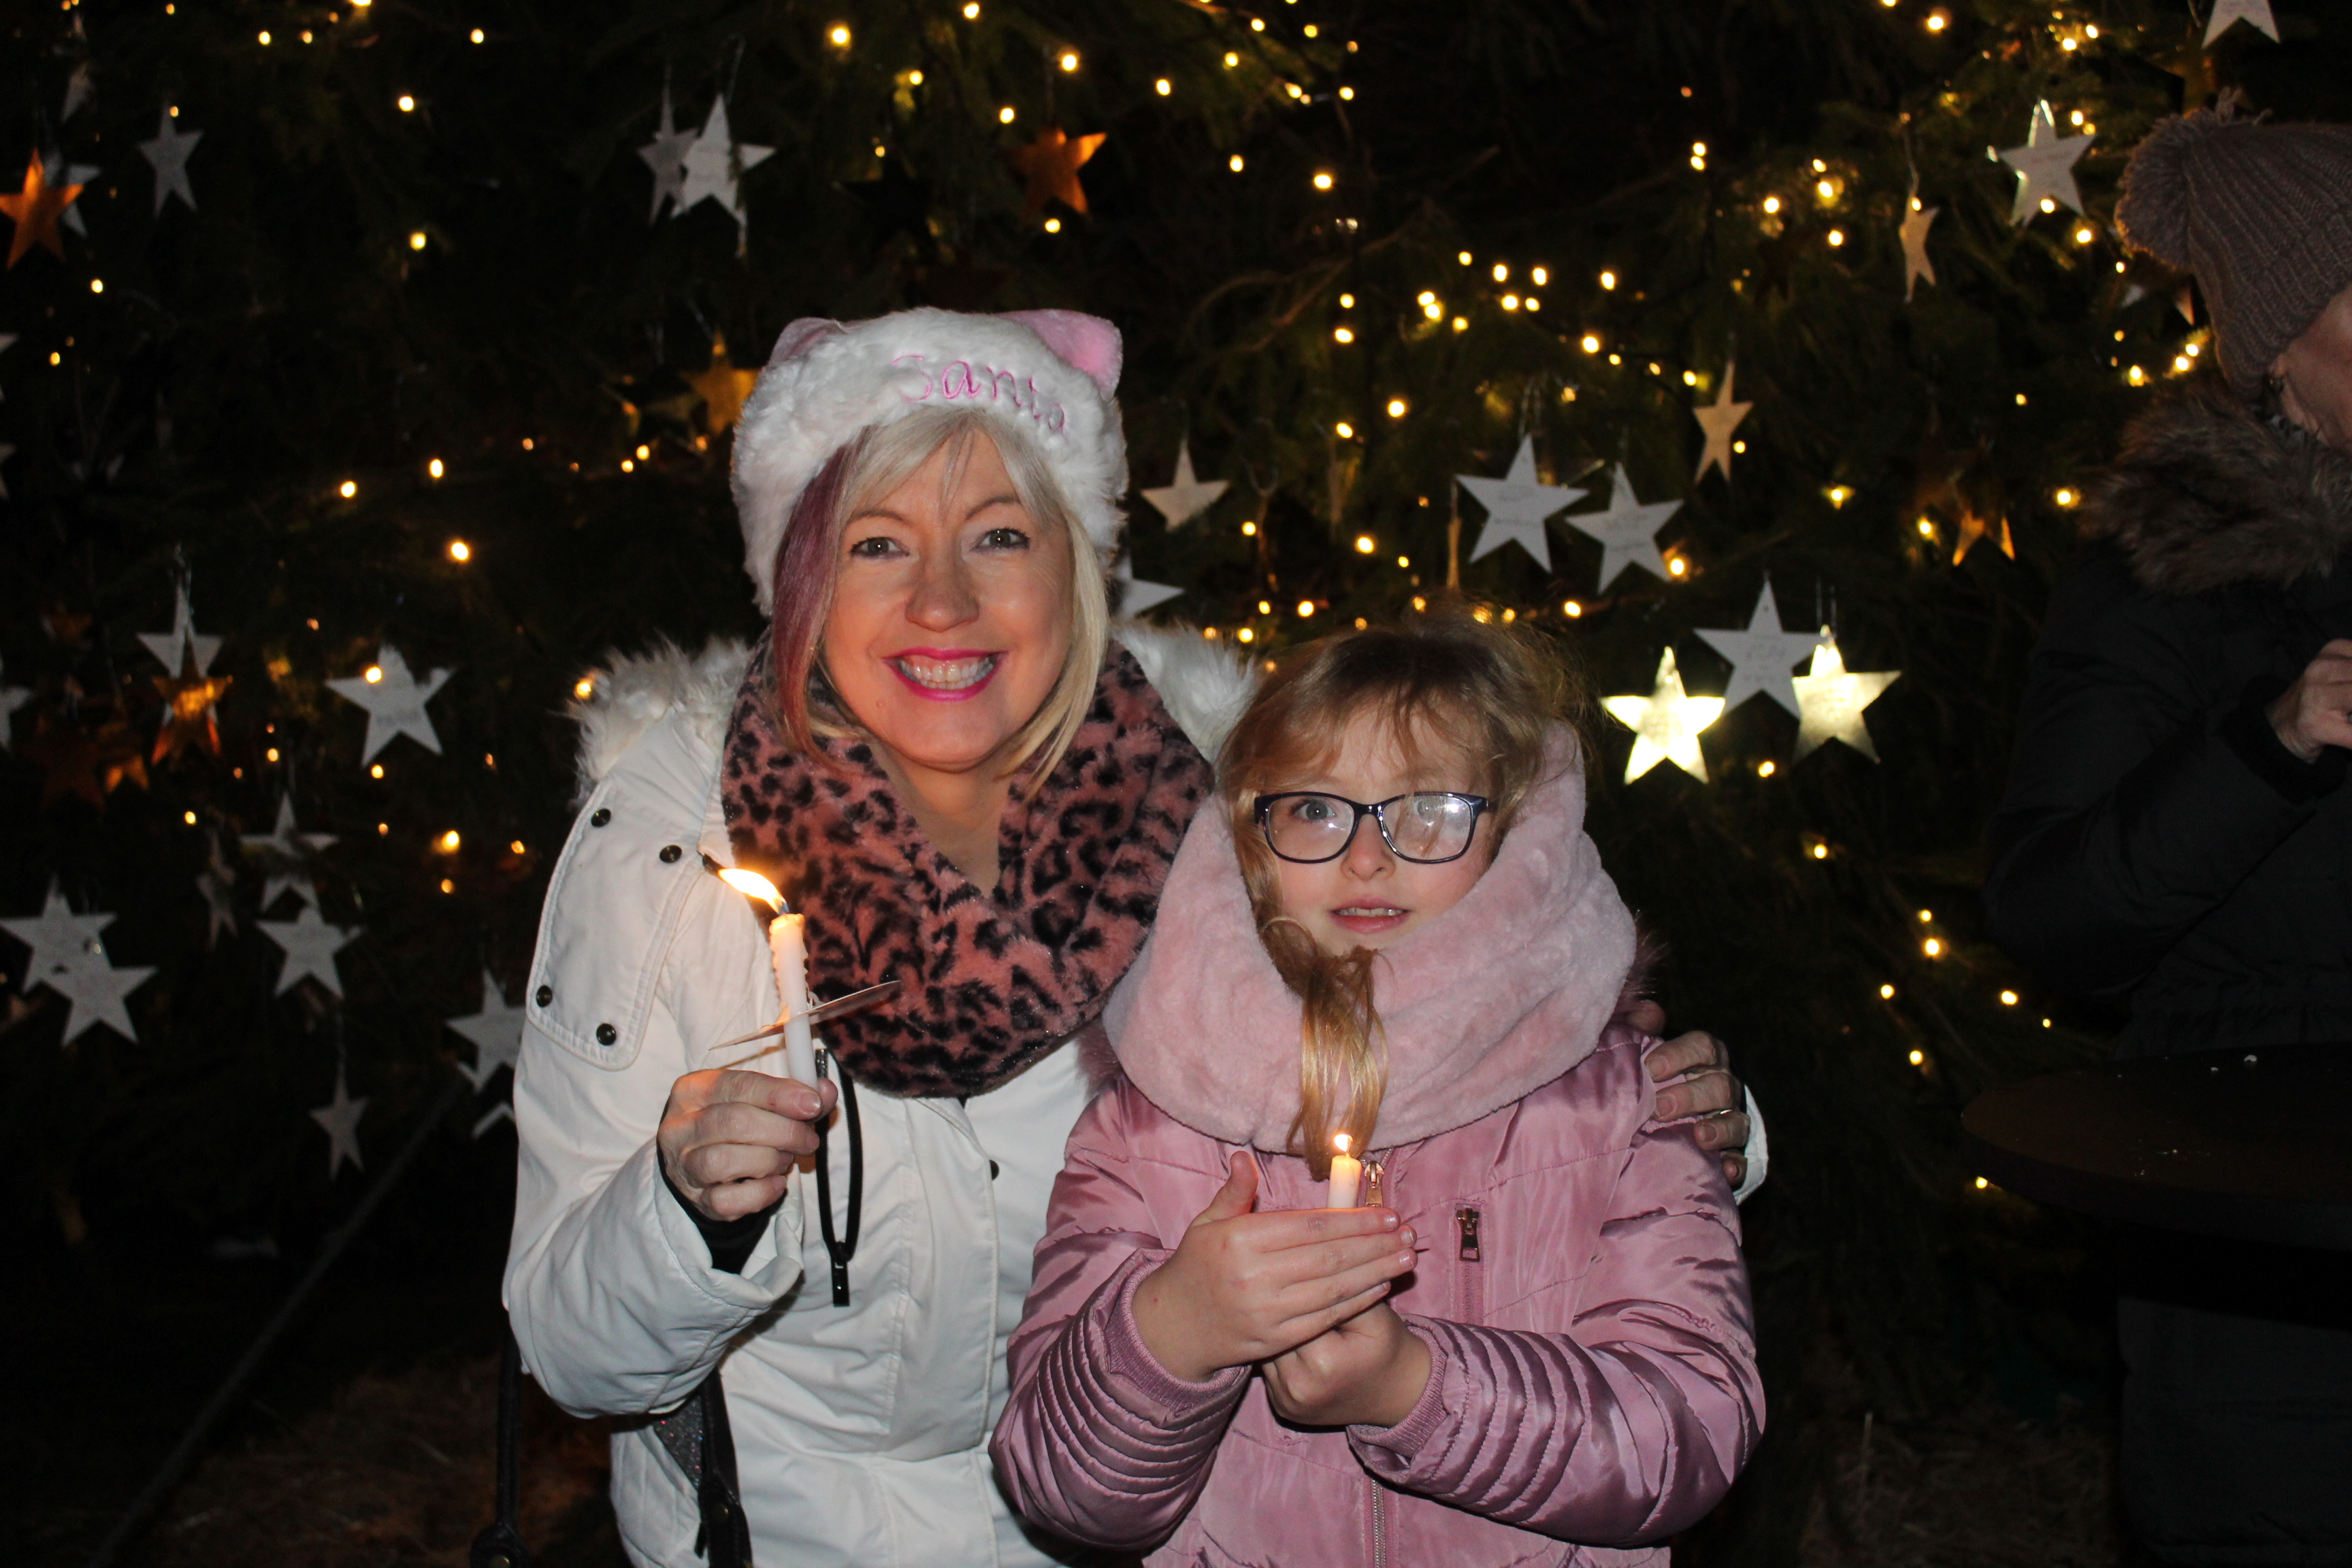 Date set for hospice Light up a Life event